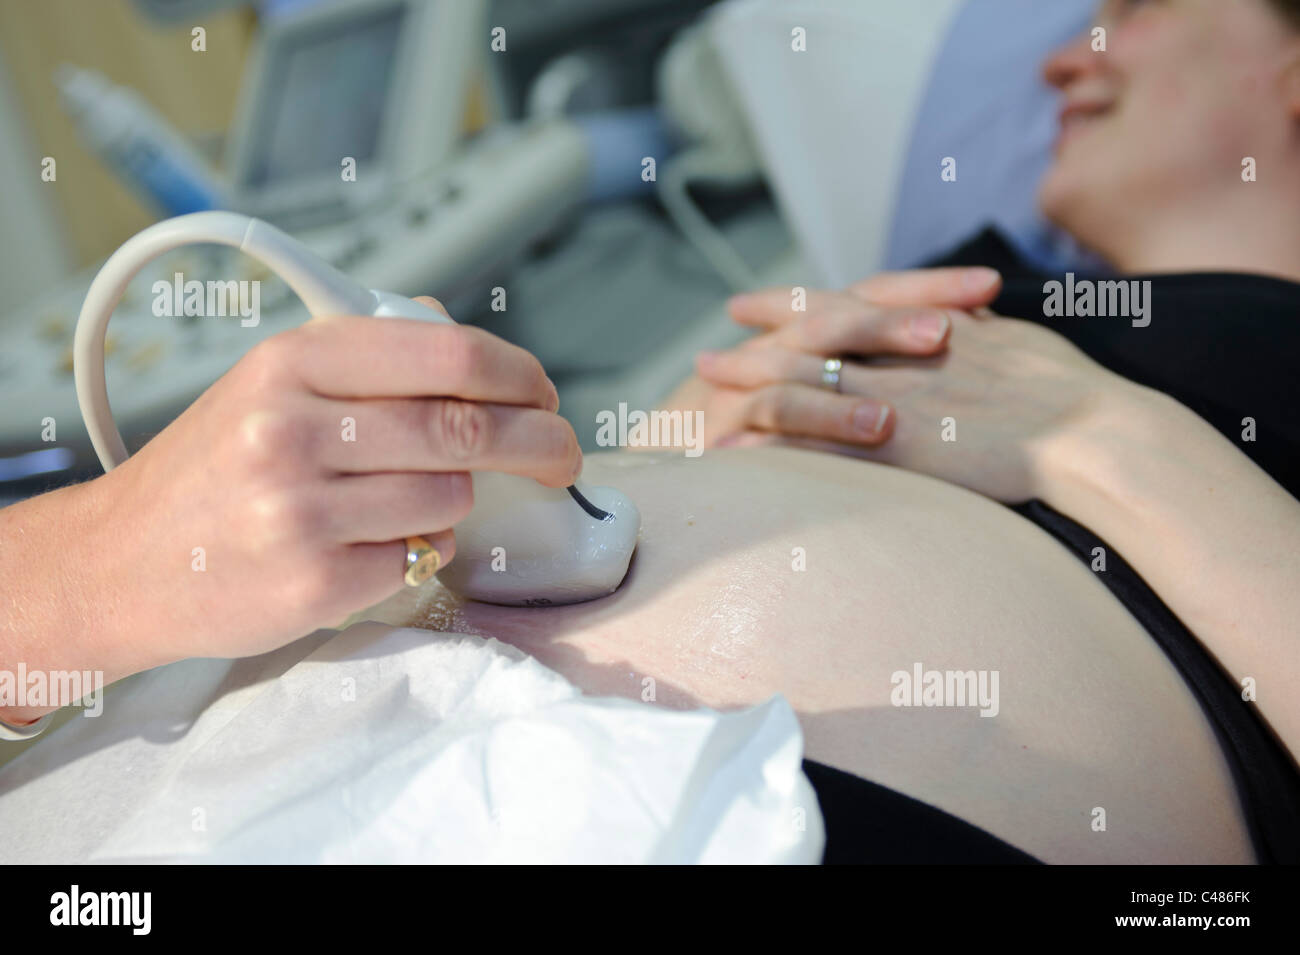 pregnant woman on patient consulting table having ultrasound scan by female doctor - Stock Image